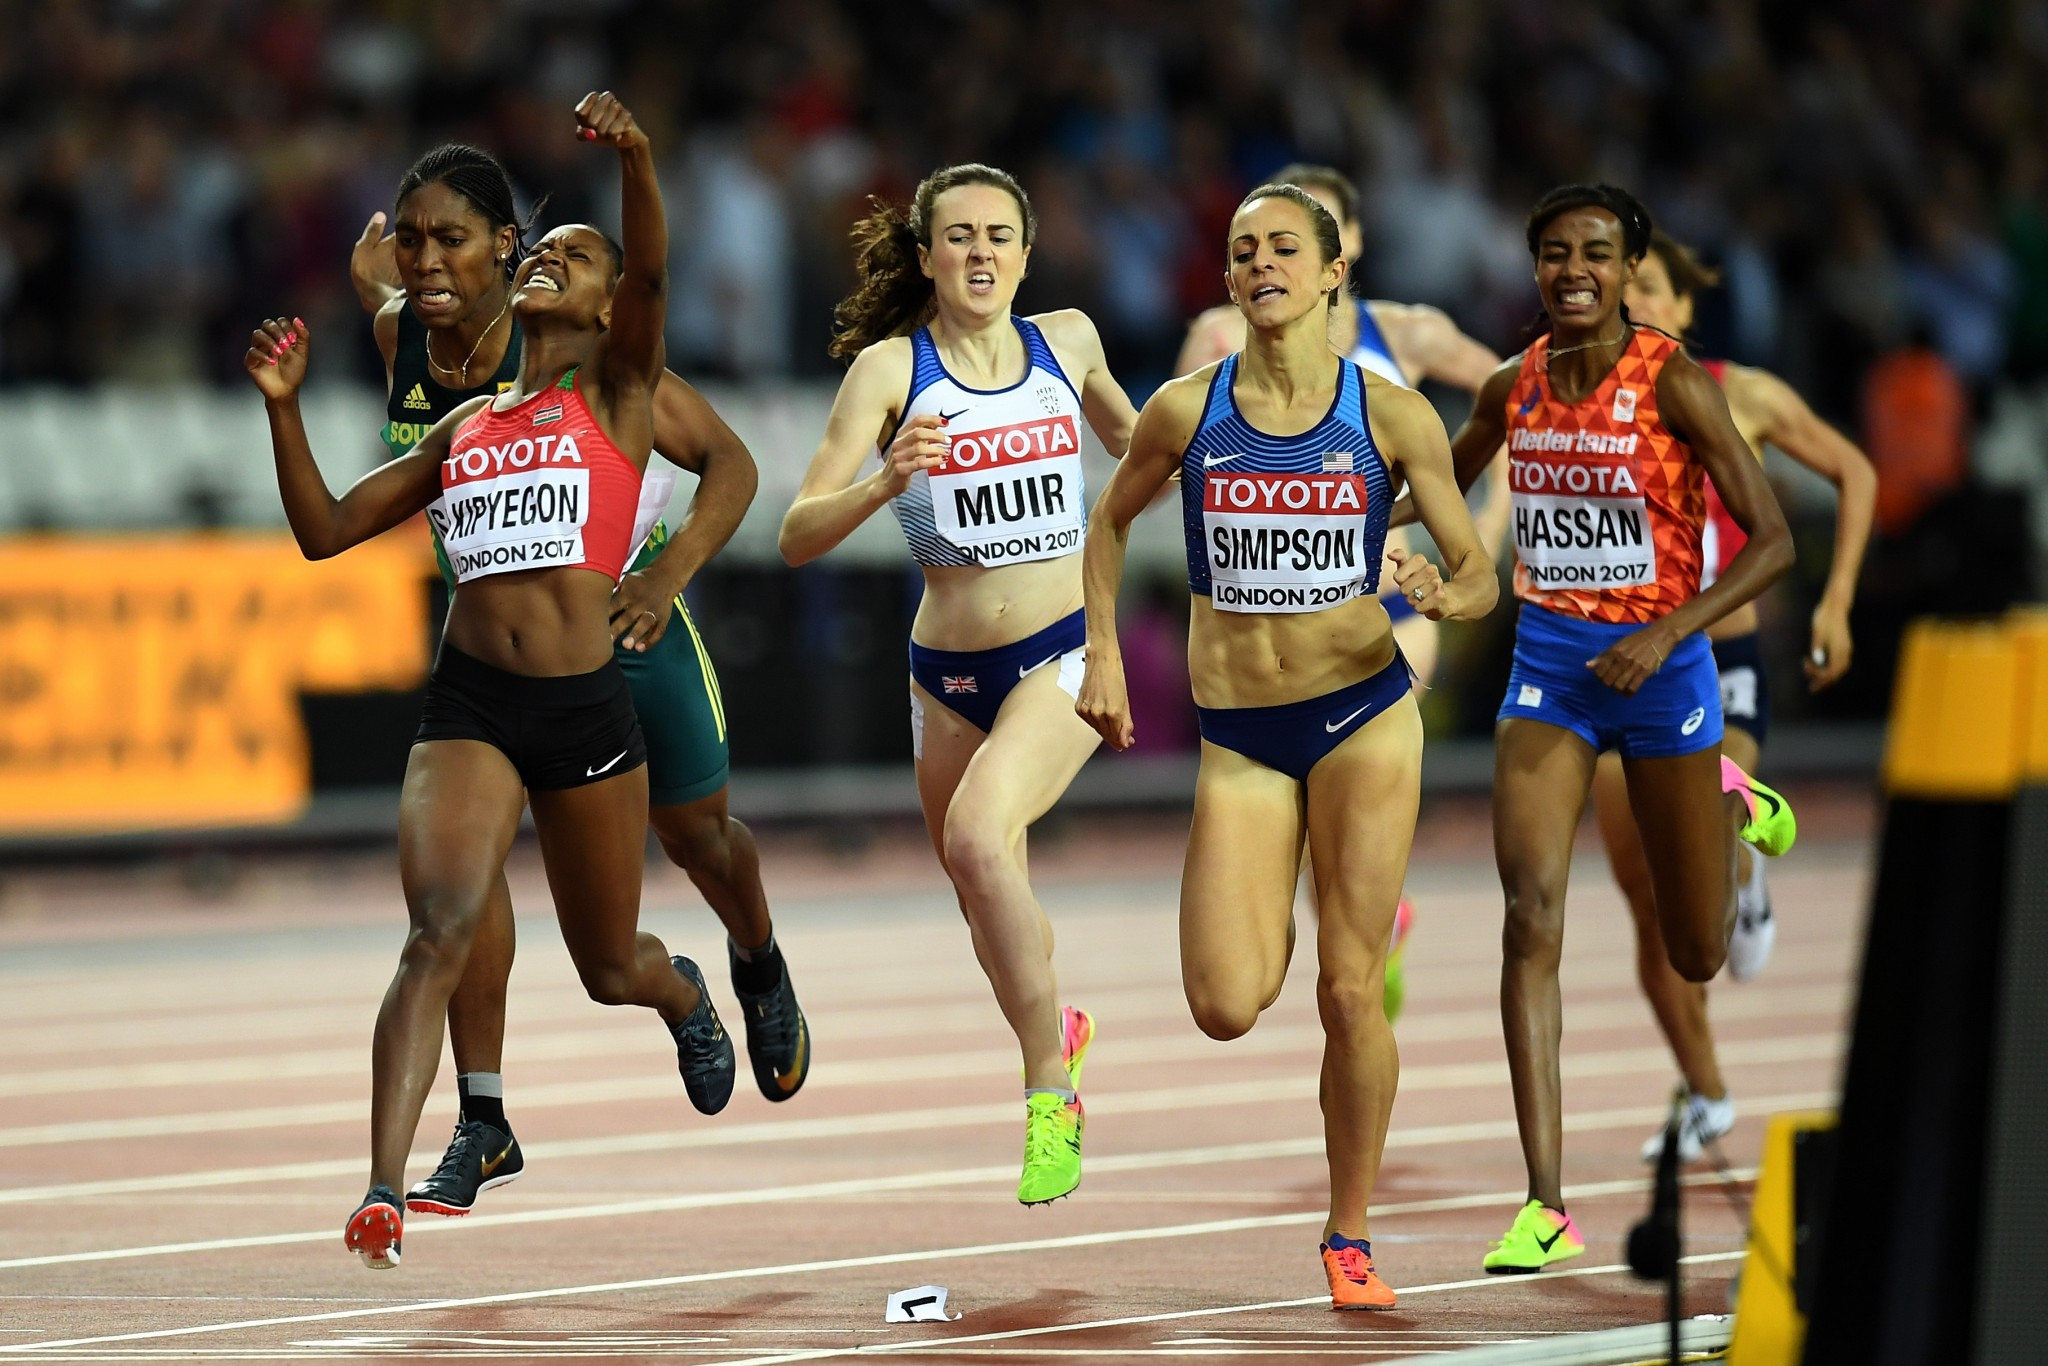 Kipyegon adds world 1500m title to Olympic crown on day four at World Athletics Championships